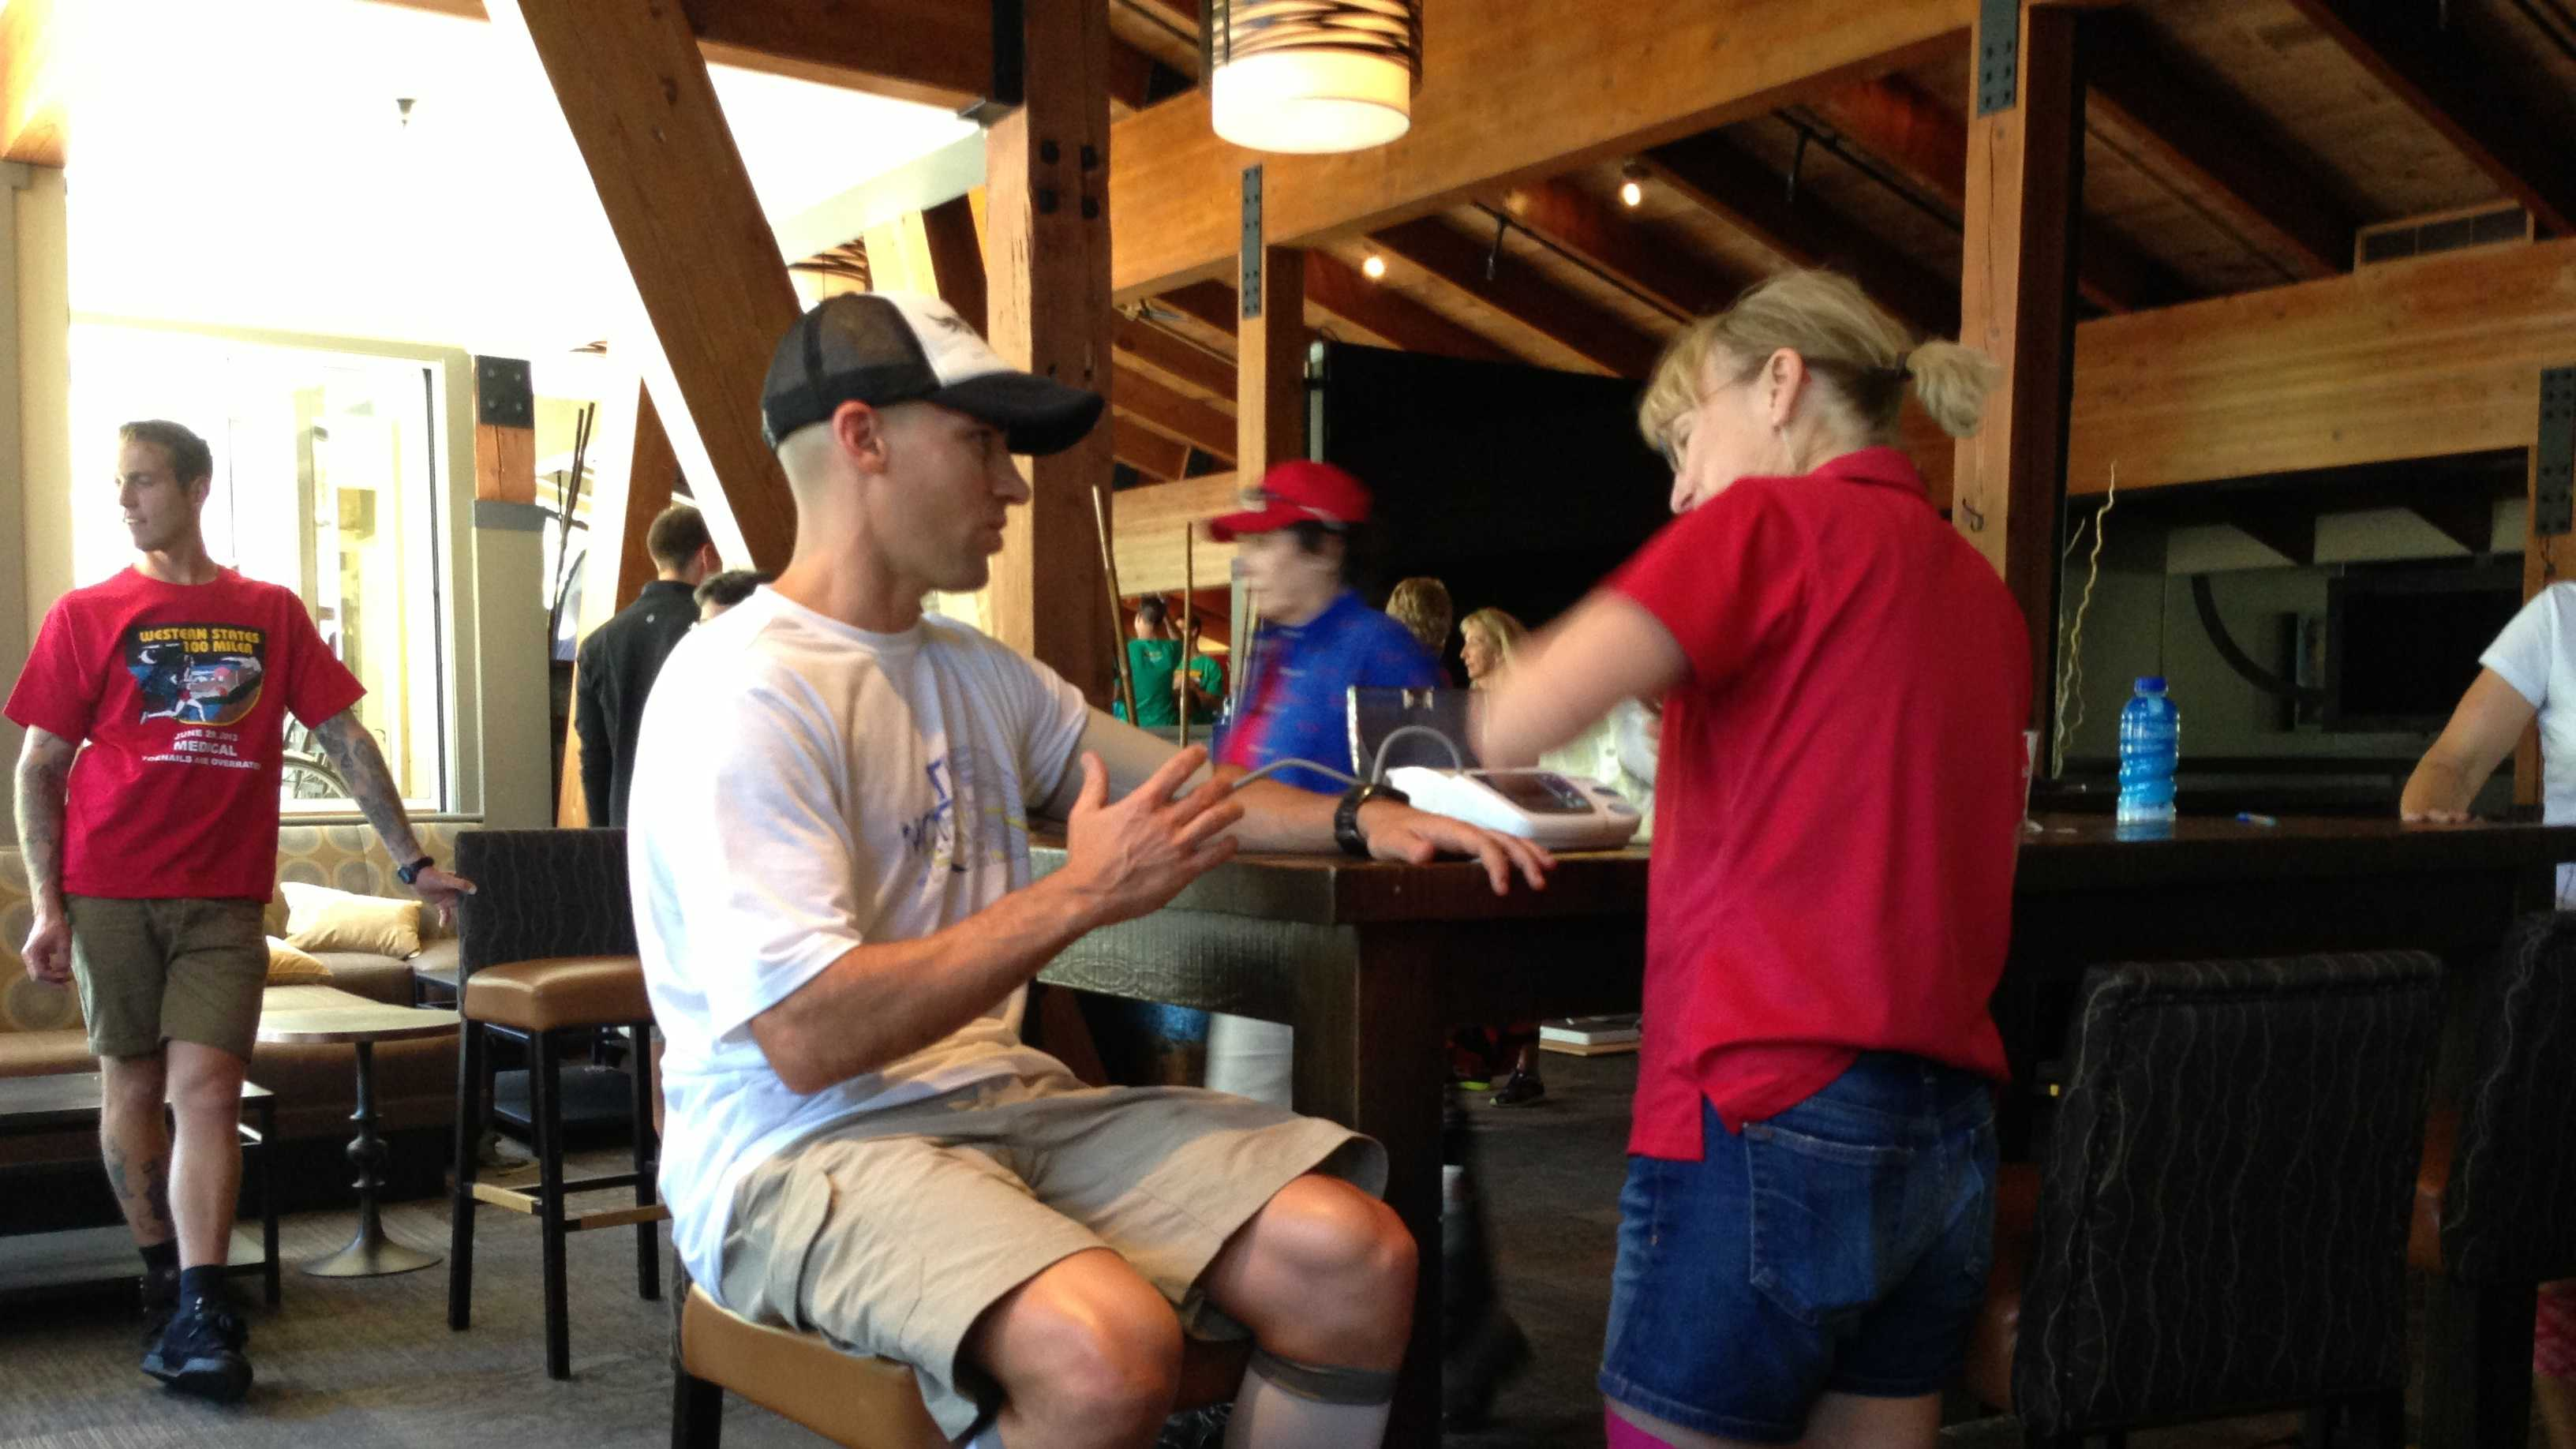 A runner's blood pressure is checked ahead of this weekend's Western State's 100-mile Endurance Run.